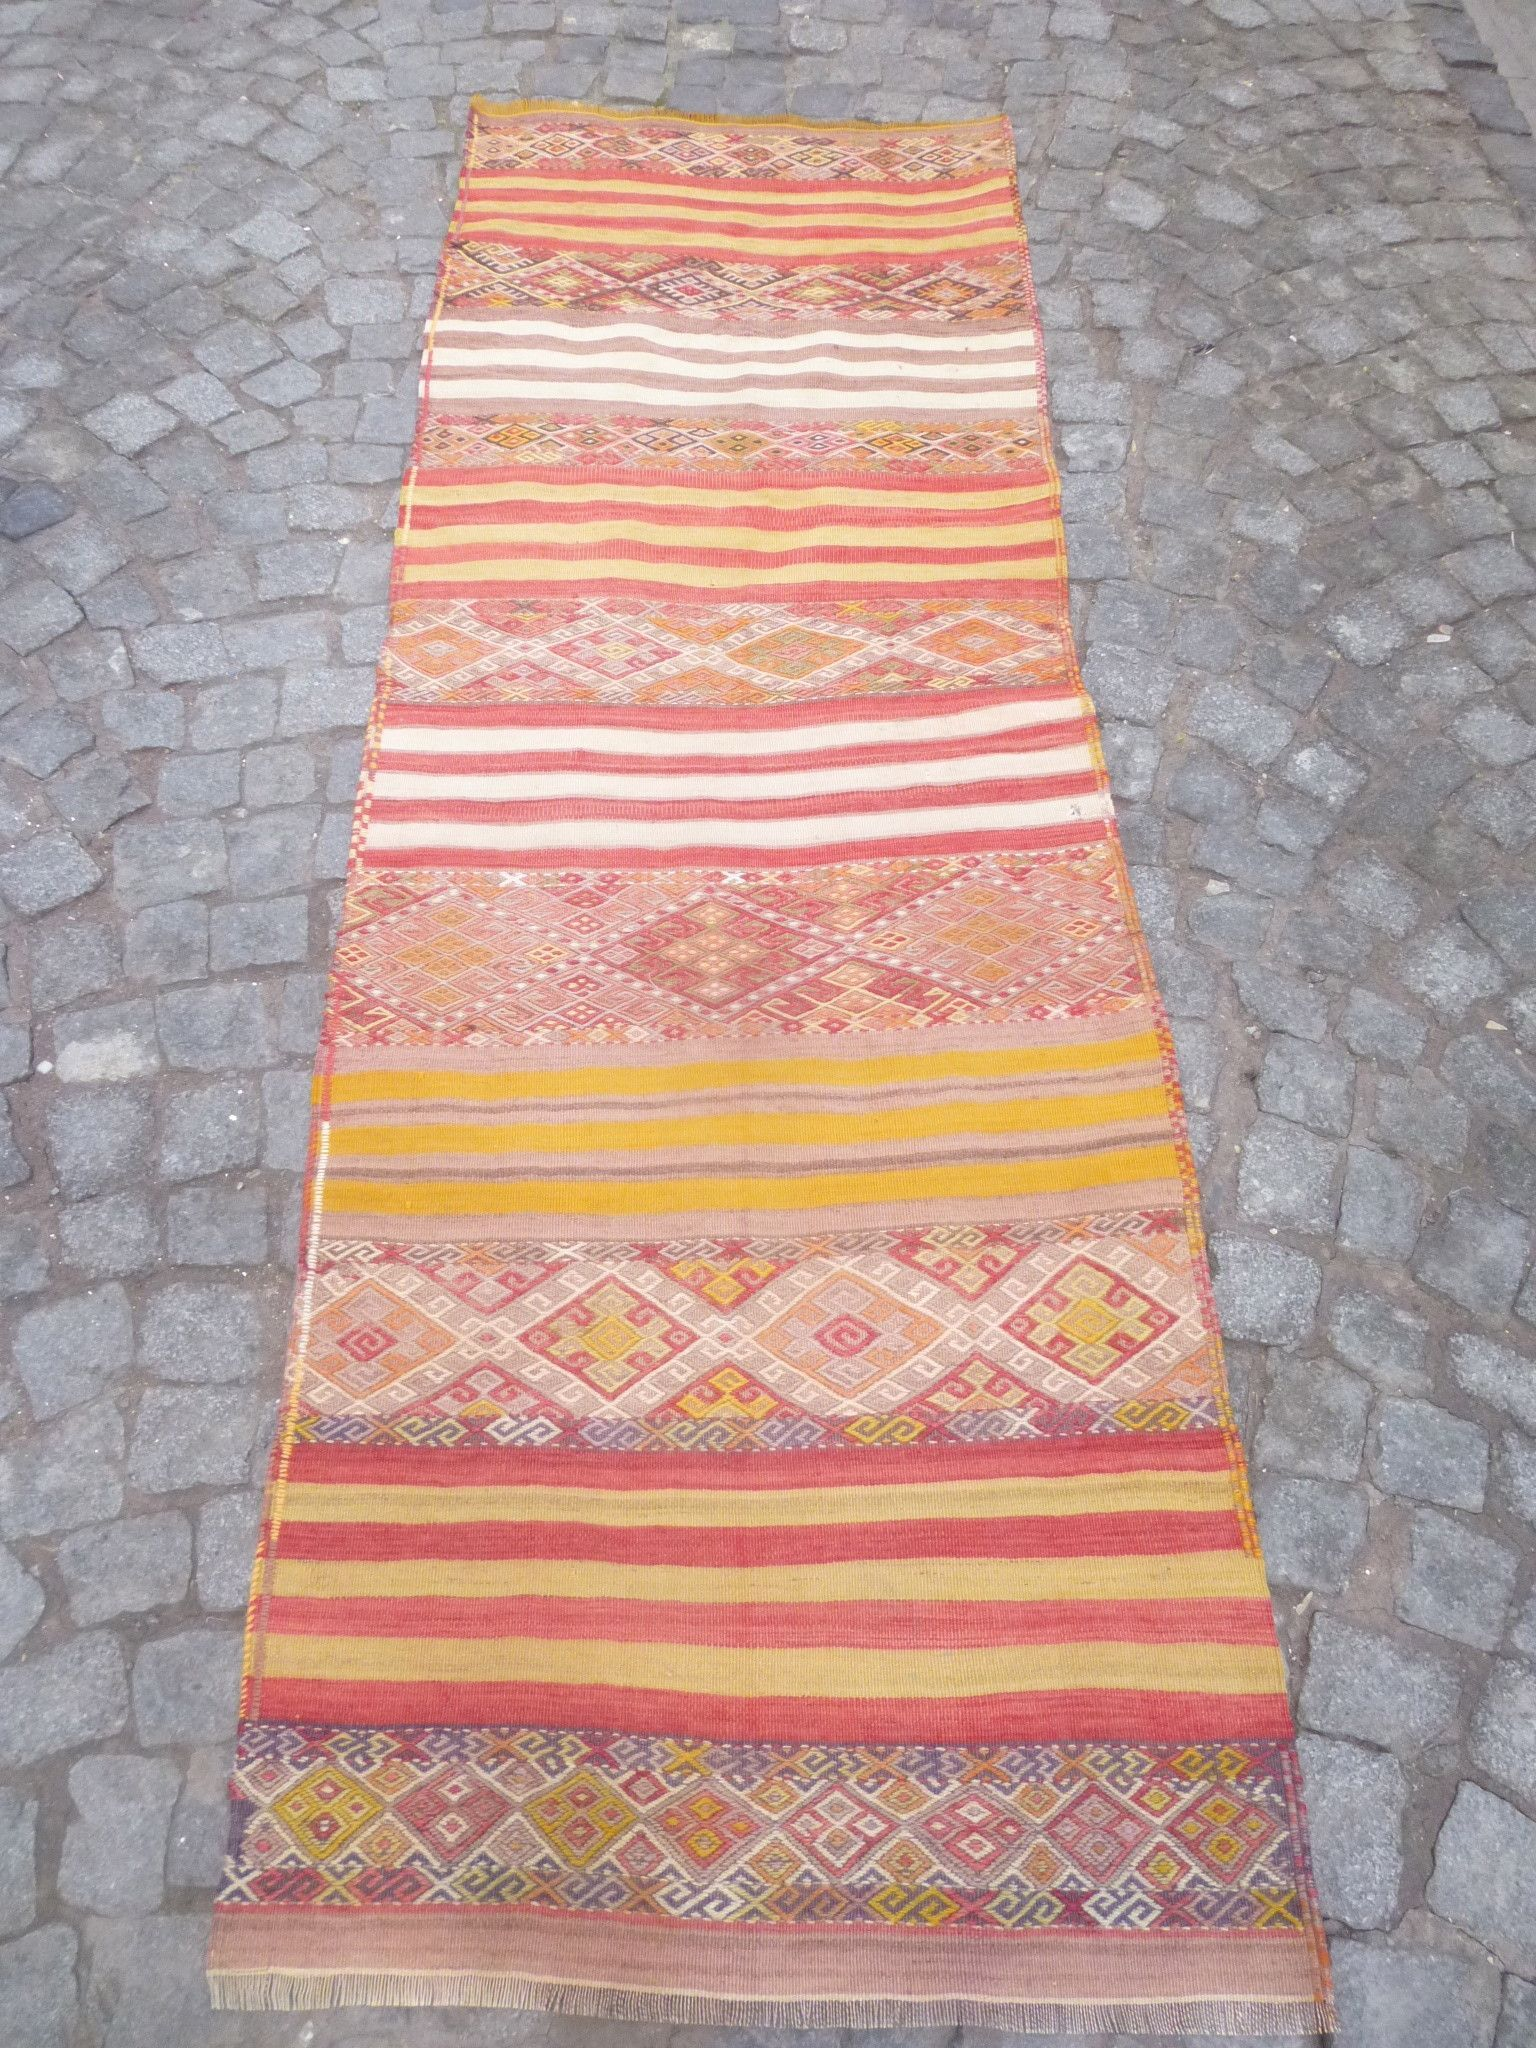 Hallway carpet runners sold by the foot   x  feet Pretty kilim runner rug with ethnic stripes  Rug